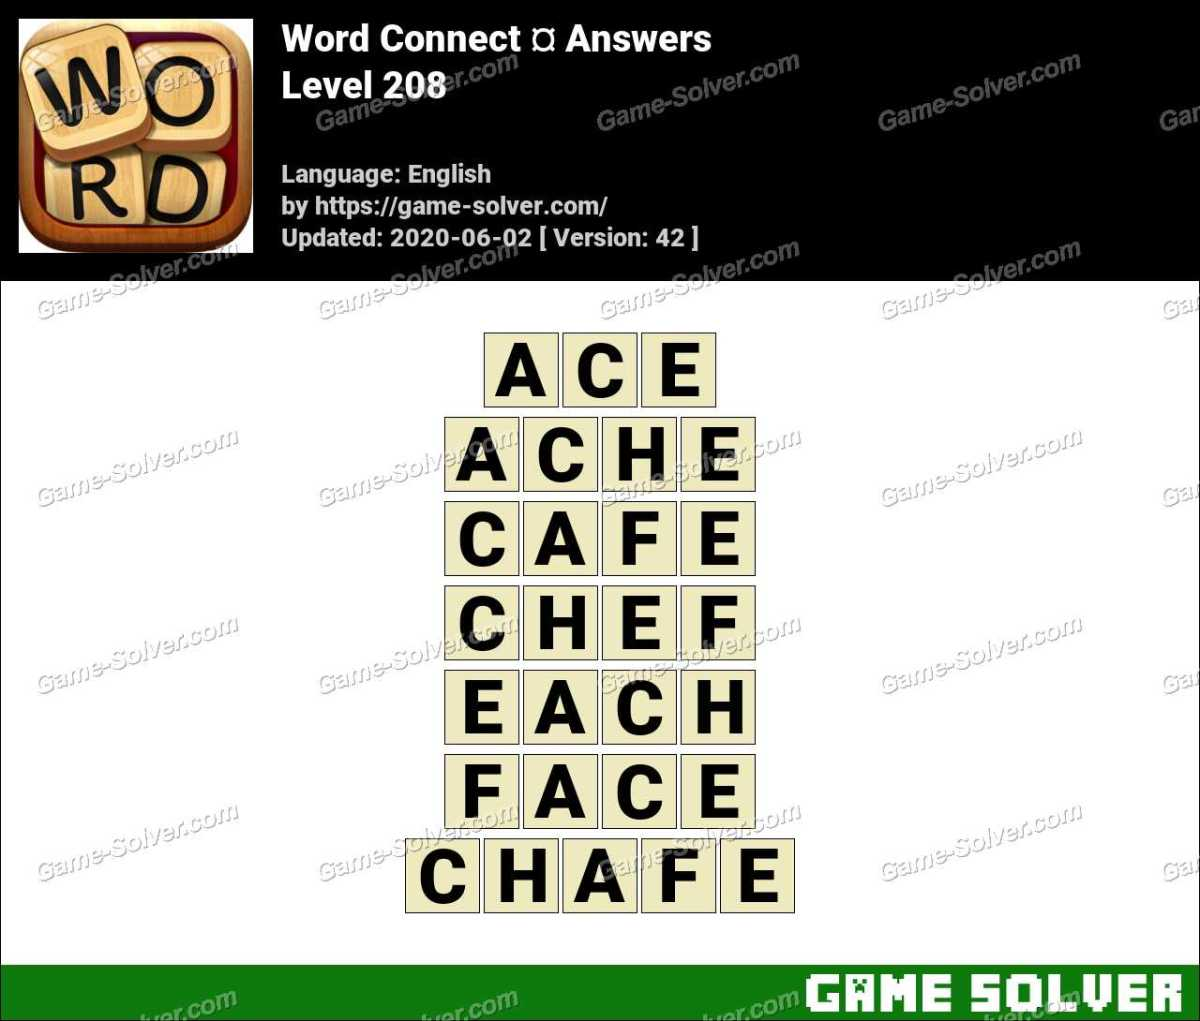 Word Connect Level 208 Answers